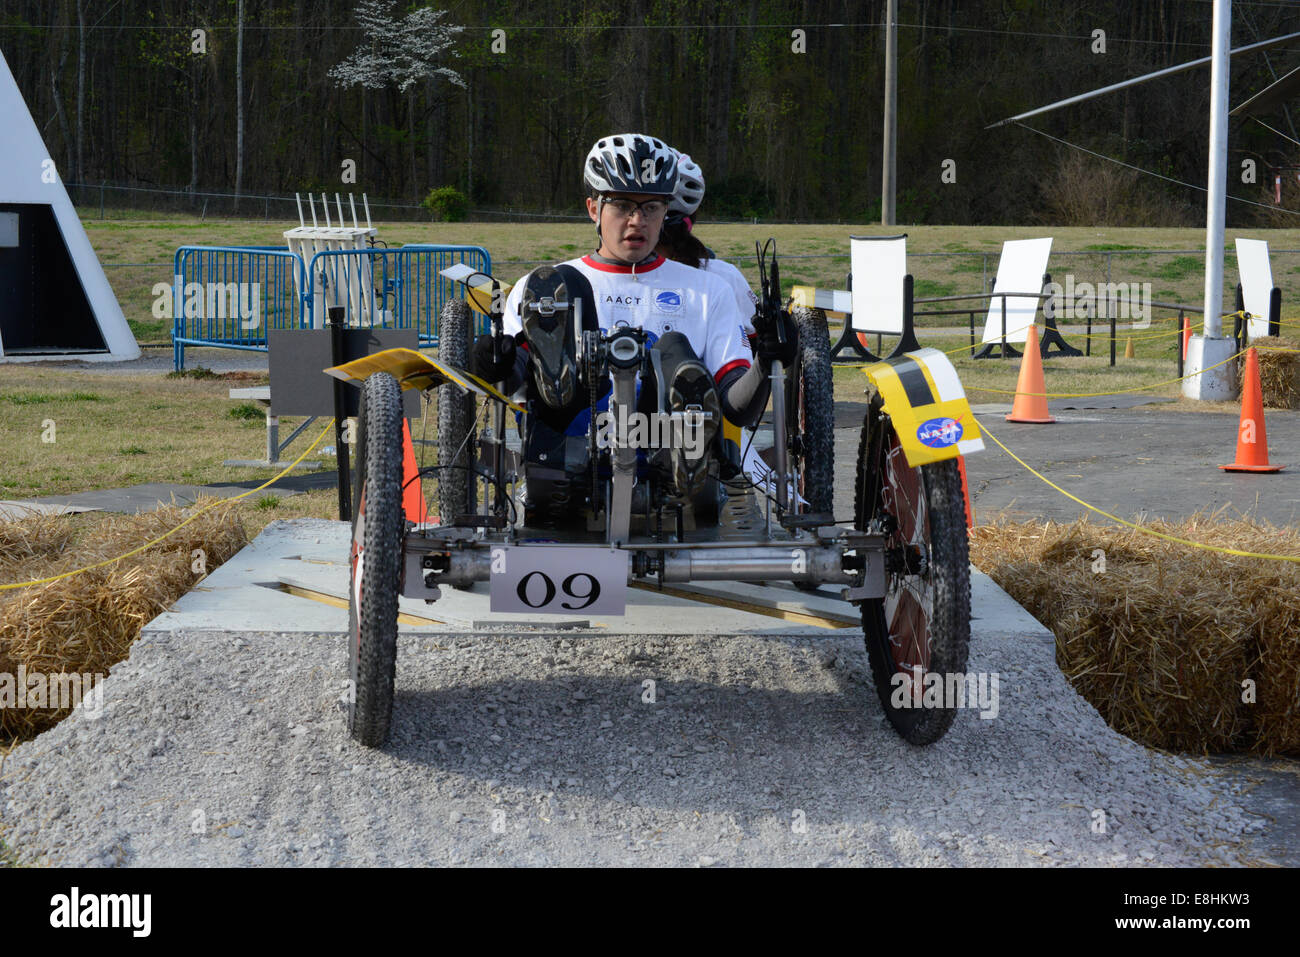 Academy of Arts Careers & Technology Marshall Space Flight Center NASA NASA Human Exploration Rover Challenge - Stock Image